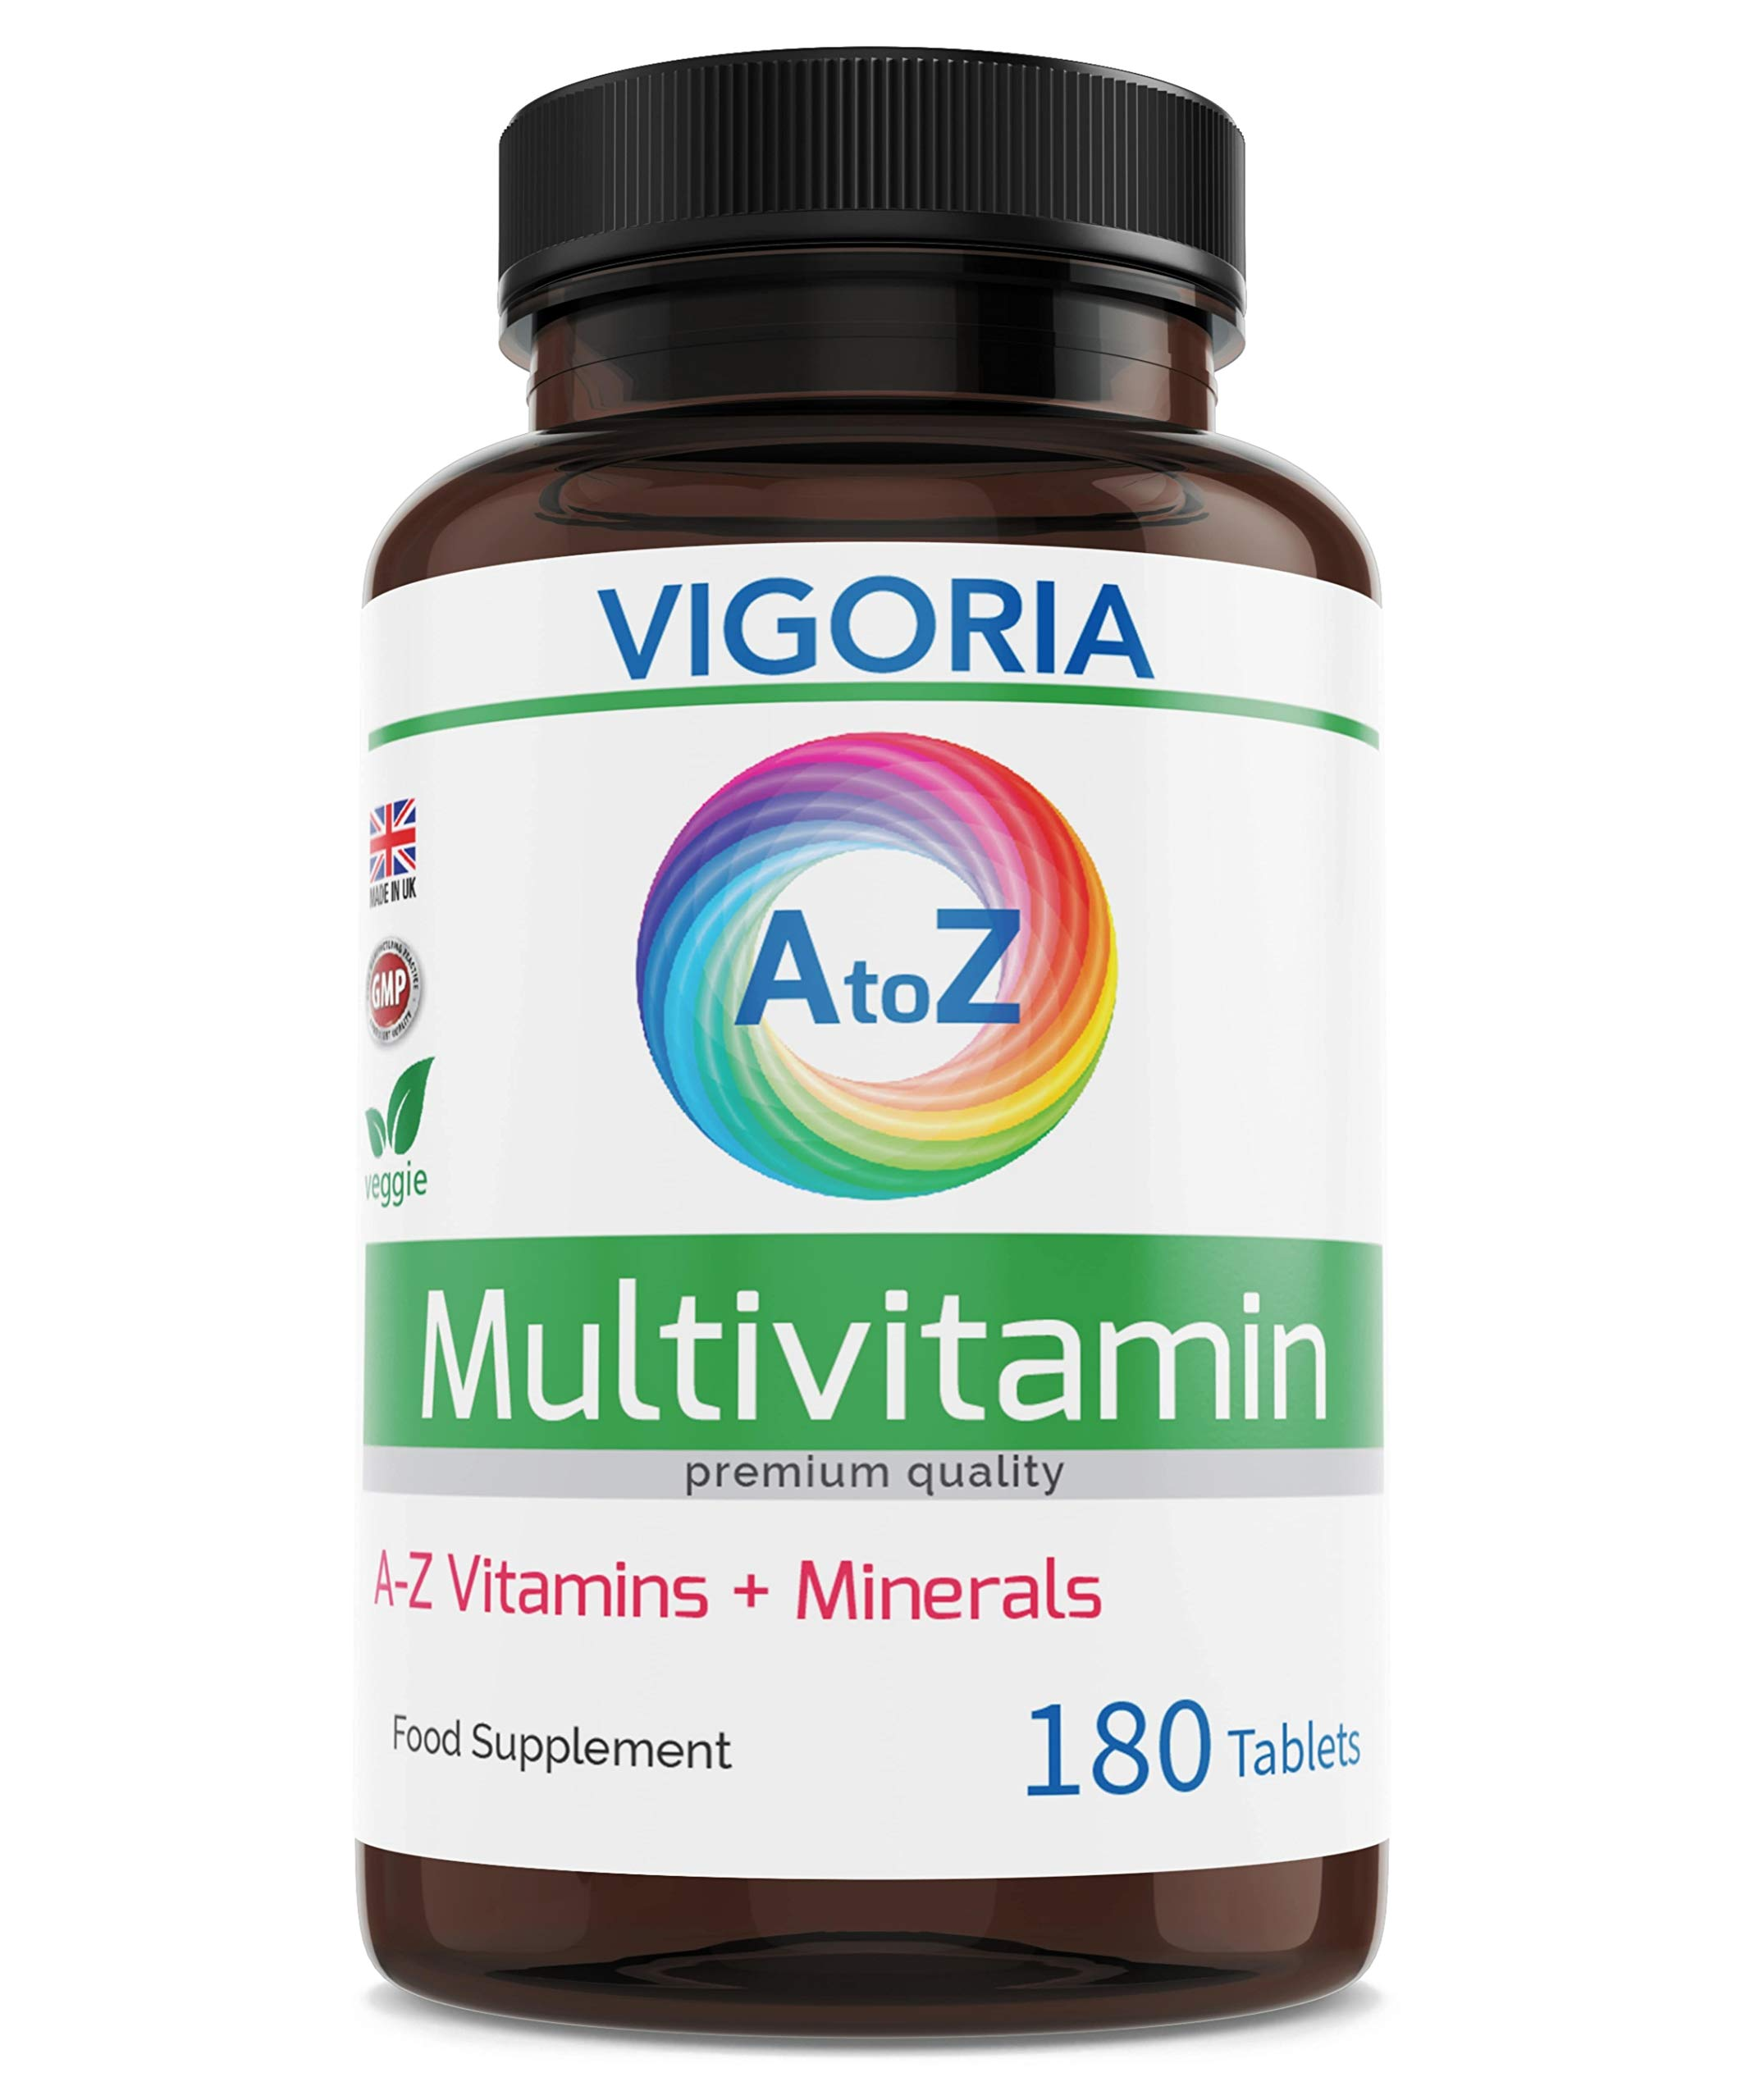 Multivitamin + Minerals A-Z Advance for Energy General Health and Wellbeing - Immune System Brain and Bone Health - Balanced Vitamin Complex for Men and Women Non-GMO - 180 Tablets - Made in The UK